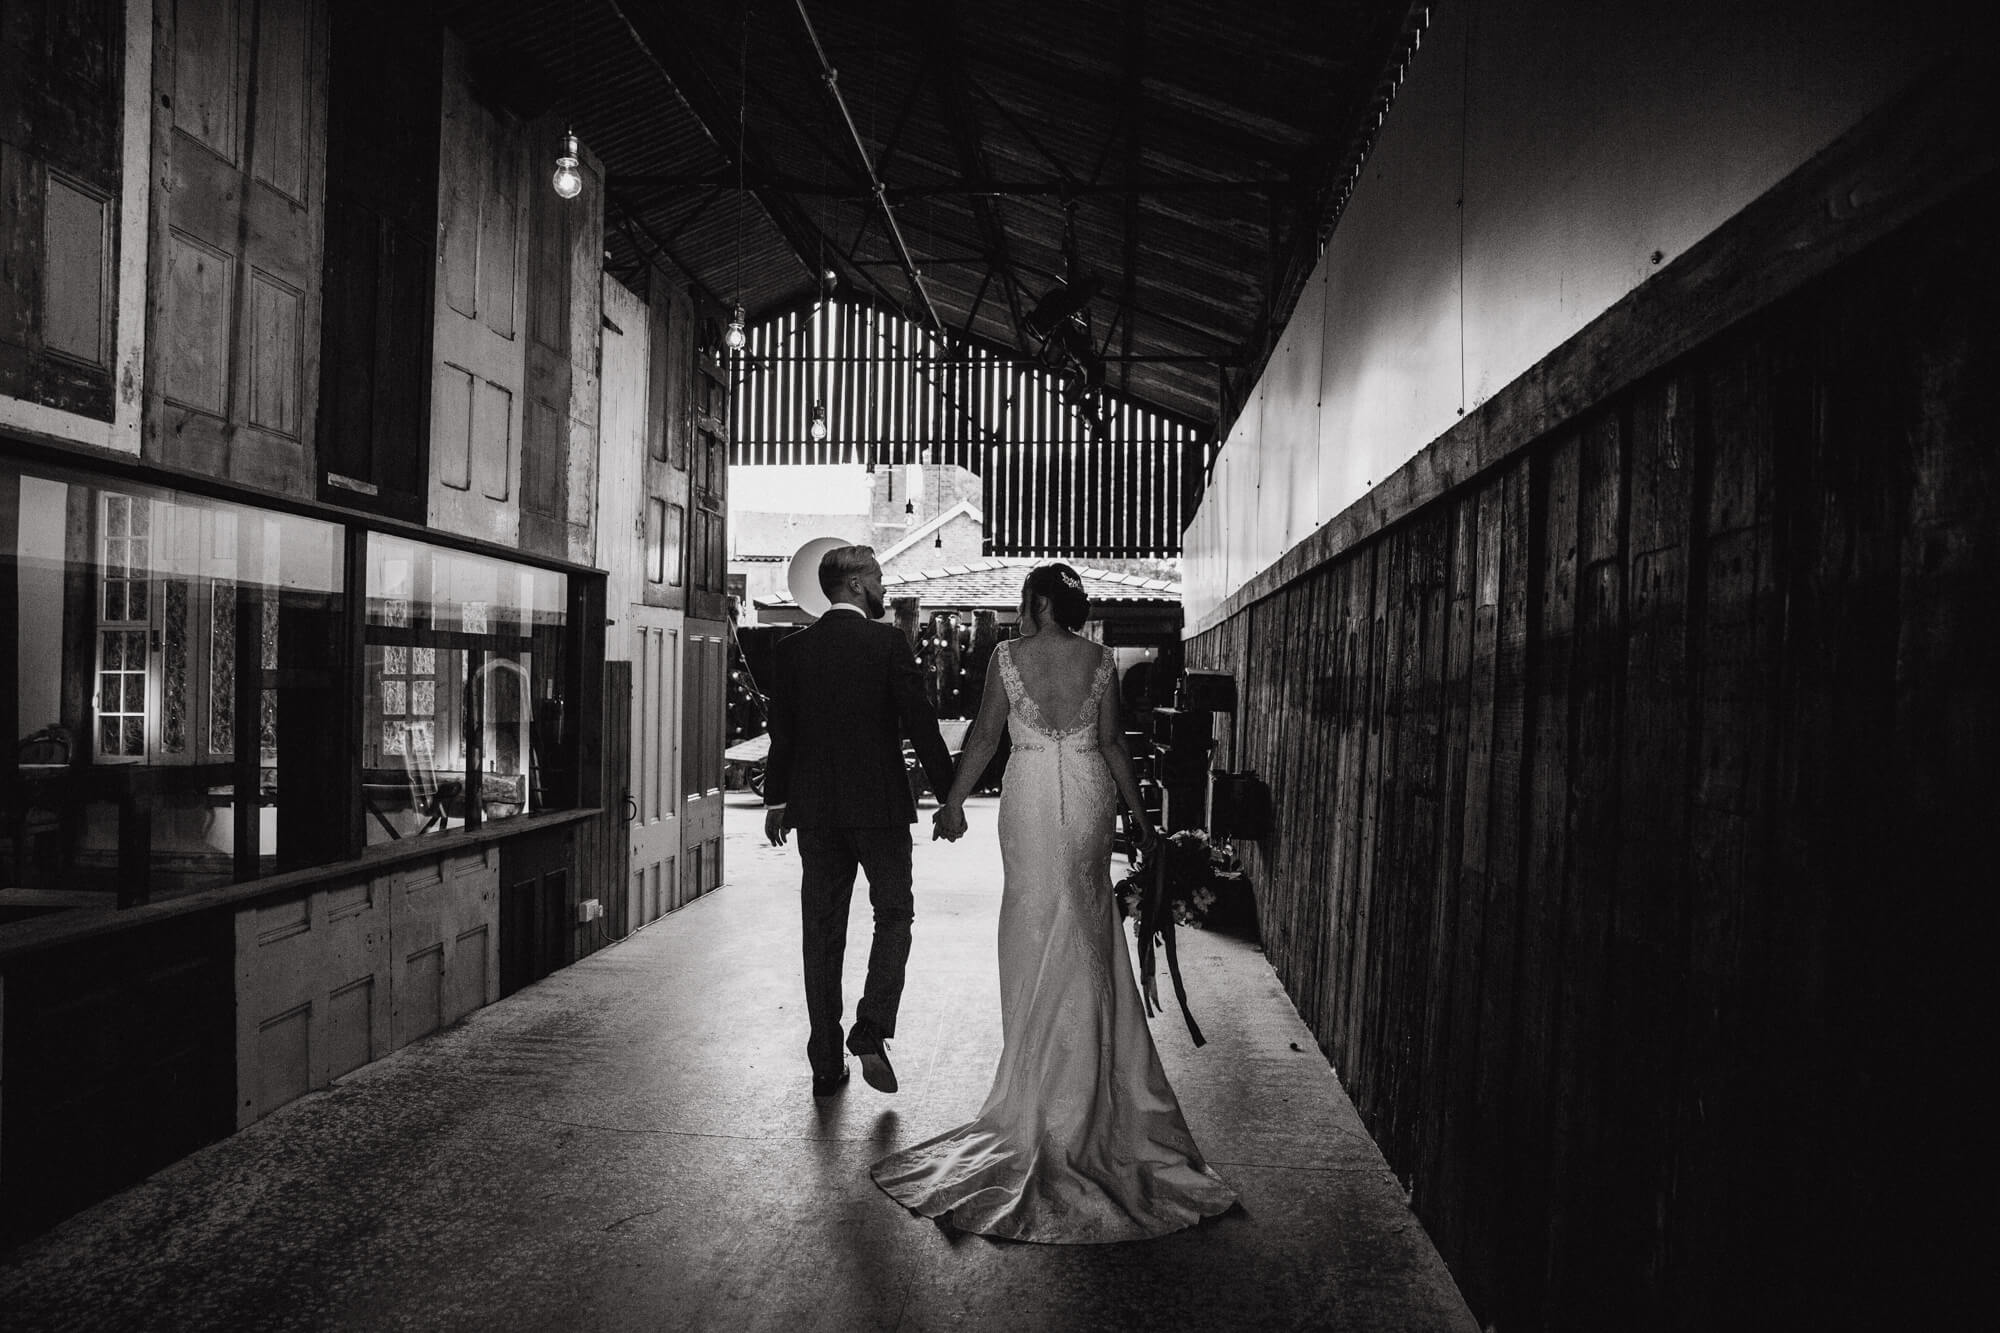 black and white photograph of bride and groom holding hands walking away from camera towards barn entrance hallway